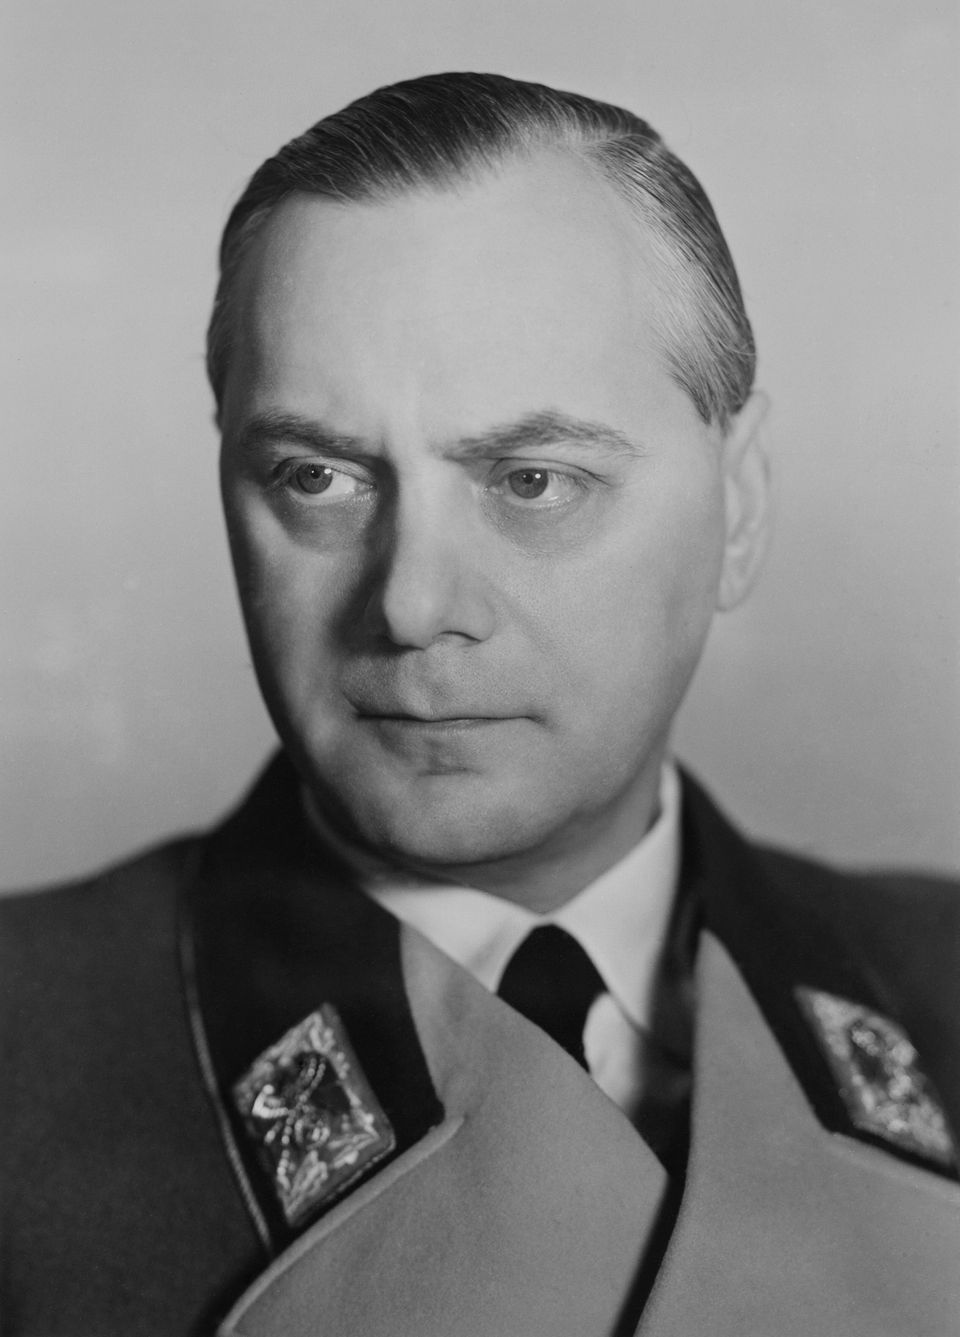 Portrait Of Reichsminister Alfred Rosenberg In Germany On January 8th 1943  (Keystone-France/Gamma-Keystone via Getty Images)